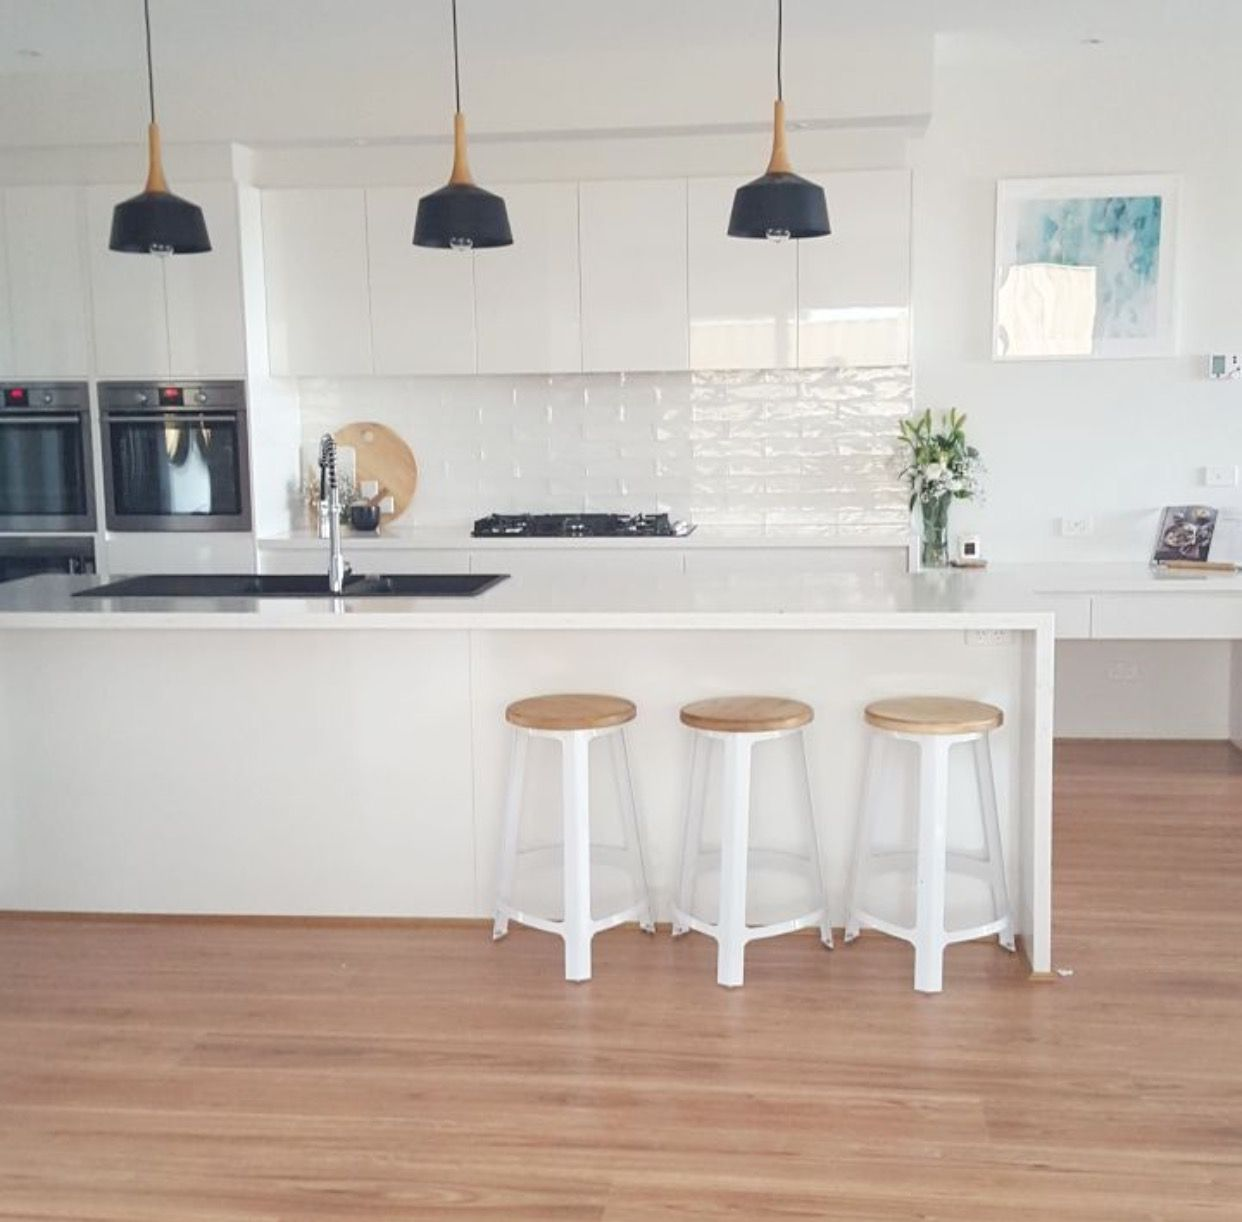 Black Kitchen Light Beacon Lighting Black Pendants Photo By Delaneykeyde